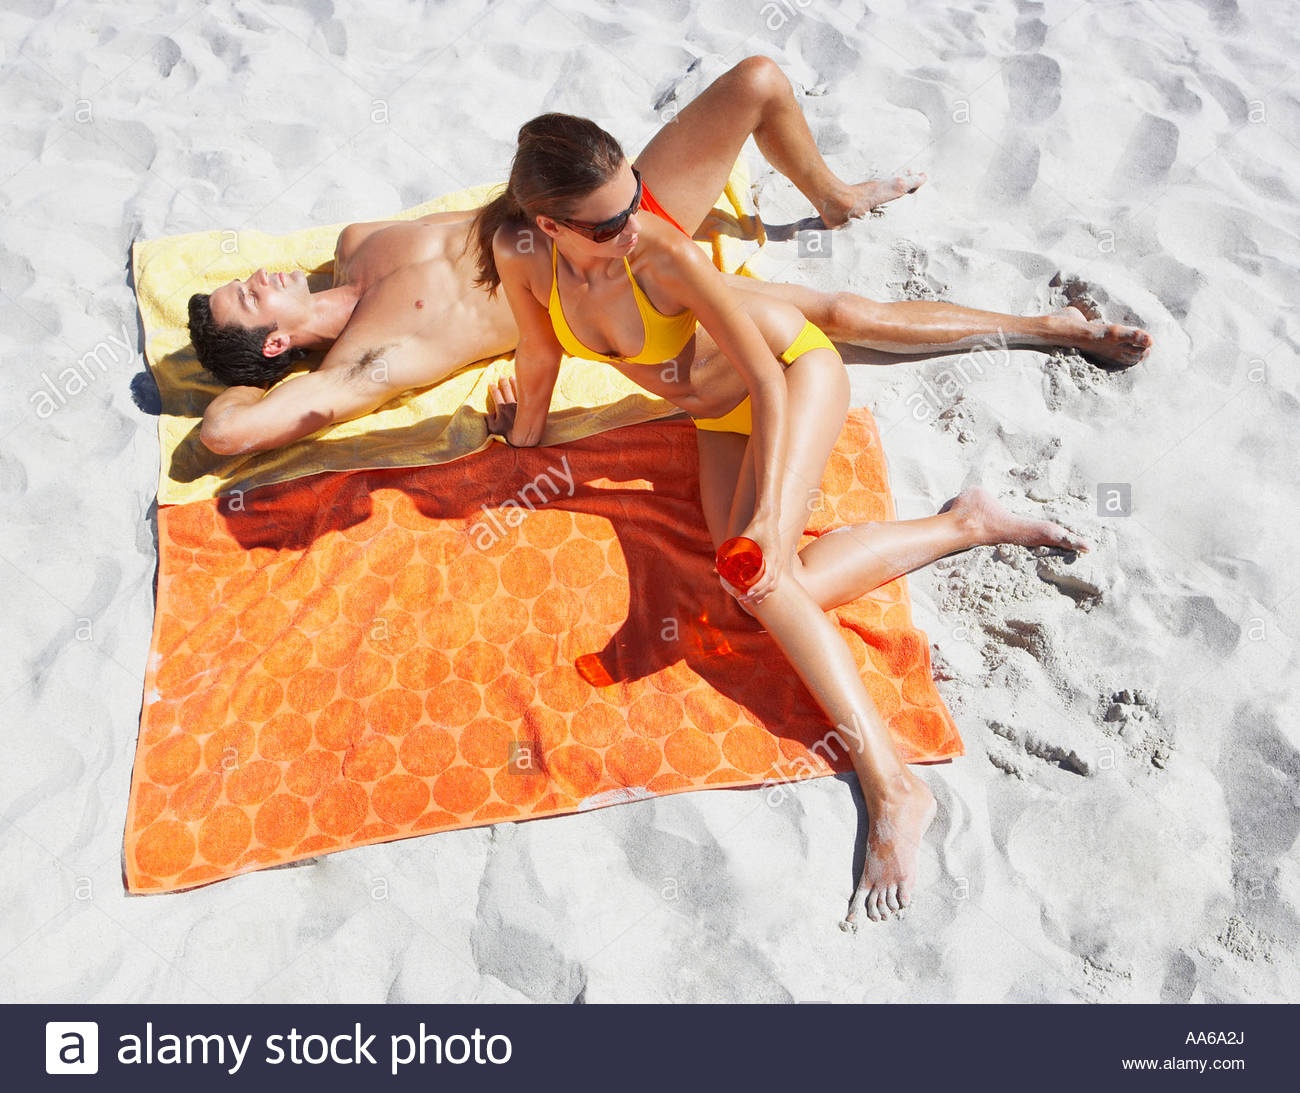 Man and woman sunbathing on beach towels in sand - Stock Image